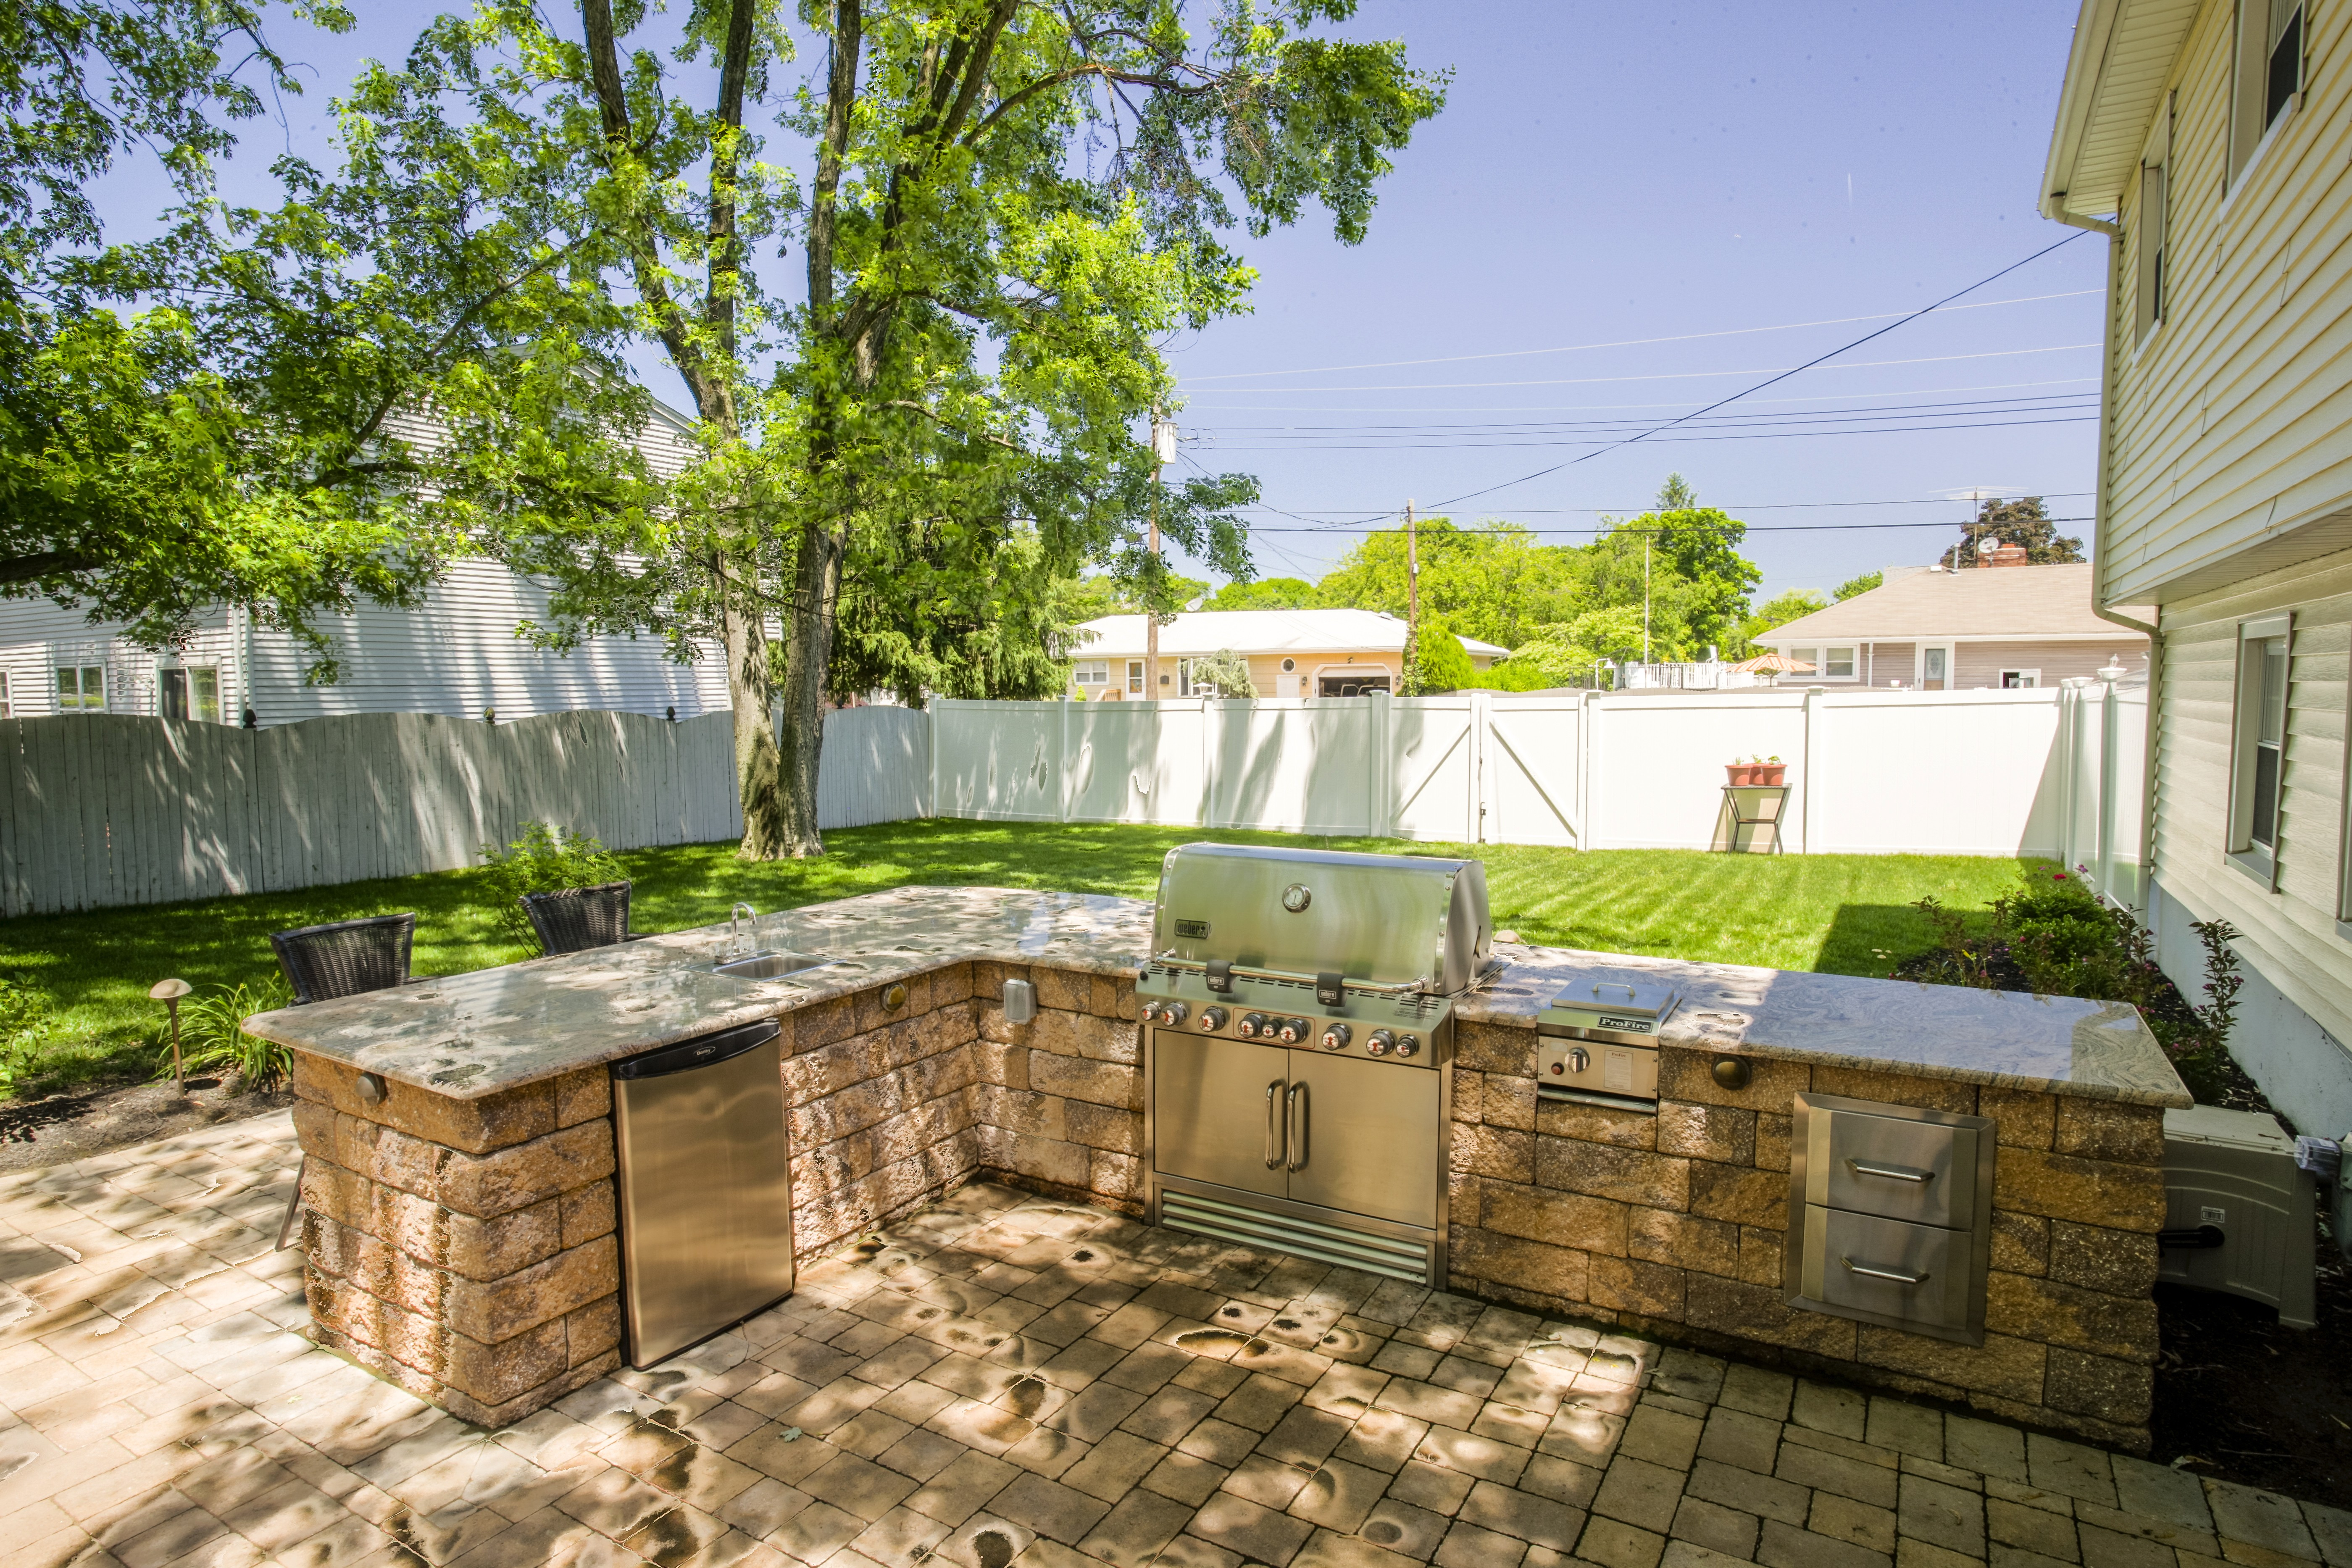 There Are Many Options For Improving Your Backyard Space, From Adding A  Grill Area To Totally Transforming The Outdoor Living Space.